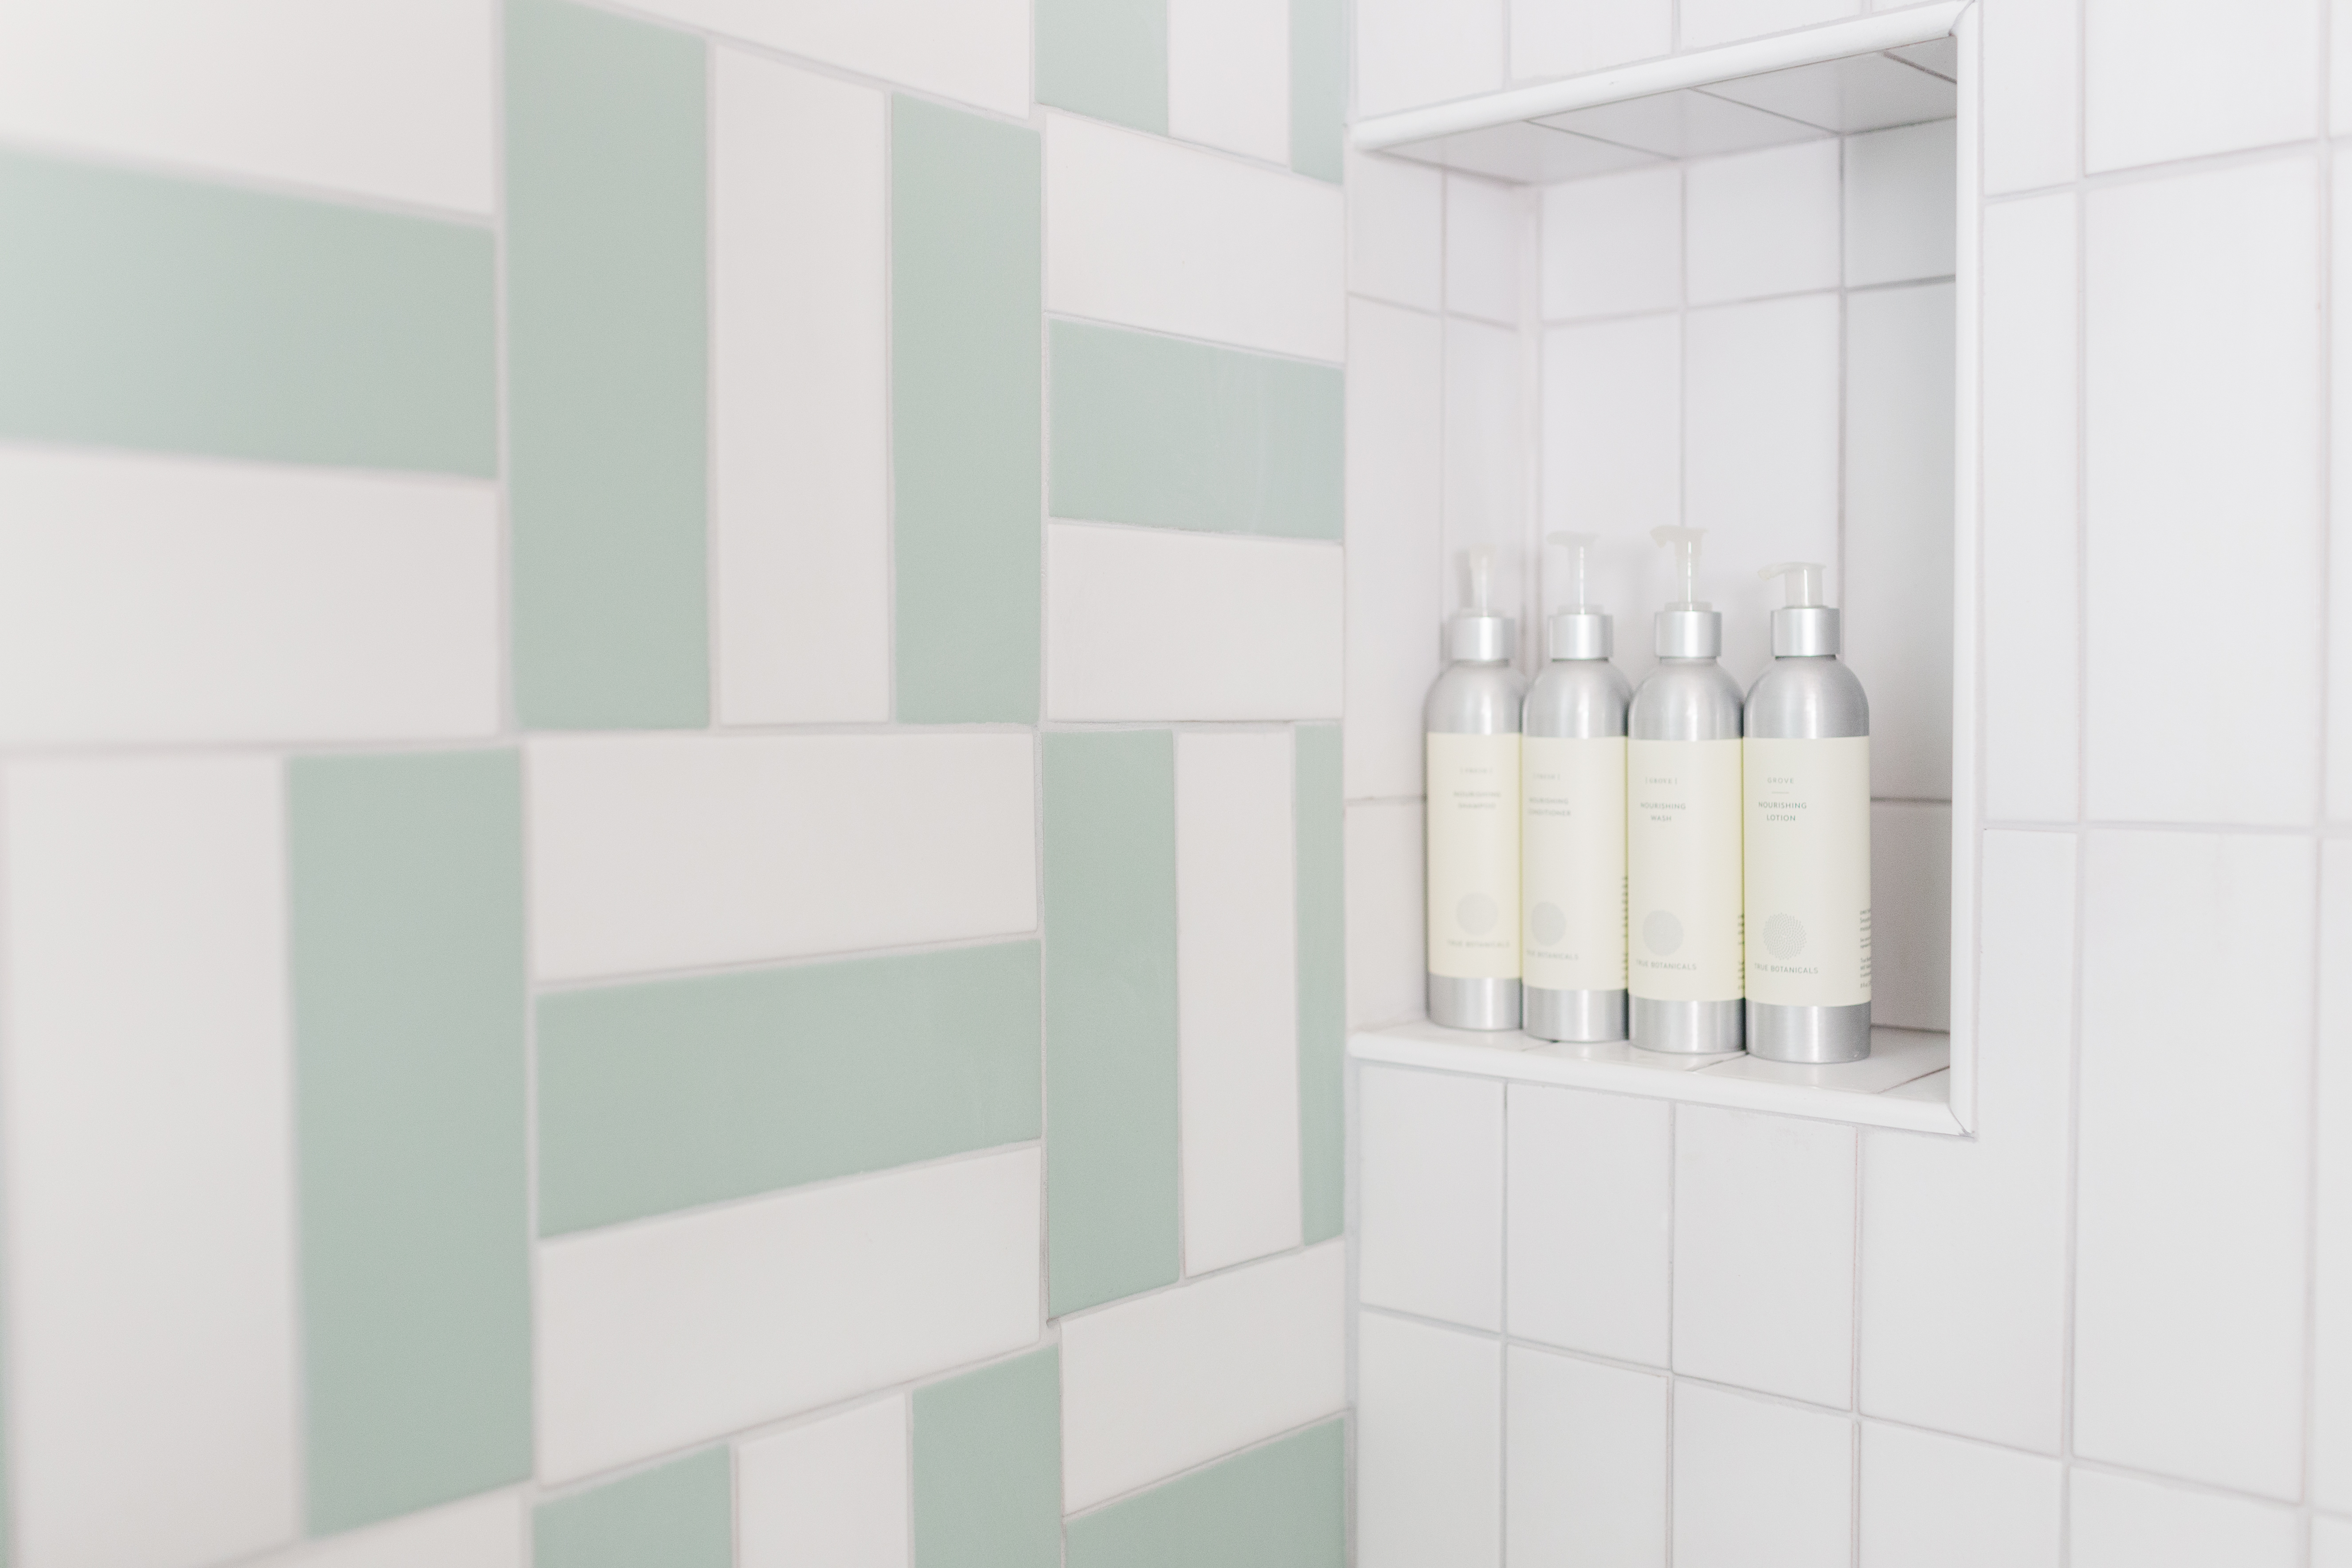 Tile Shown: 3x9s in Daisy and Sea Glass